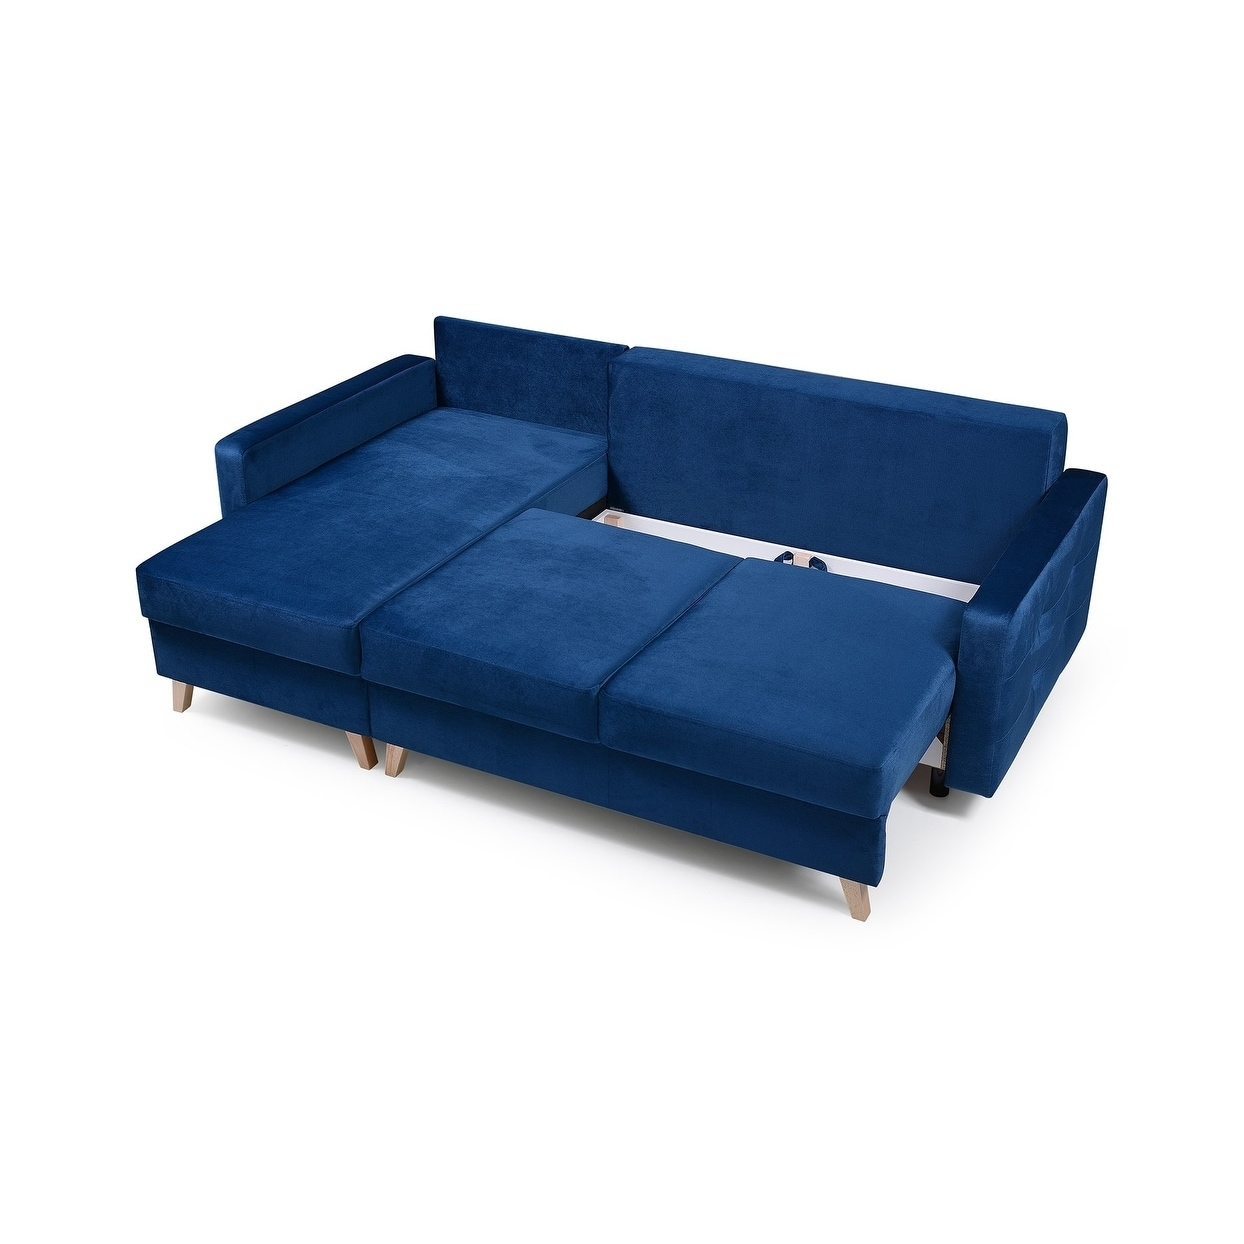 Vegas Futon Sectional Sofa Bed Queen Sleeper With Storage Ships To Canada 23558765